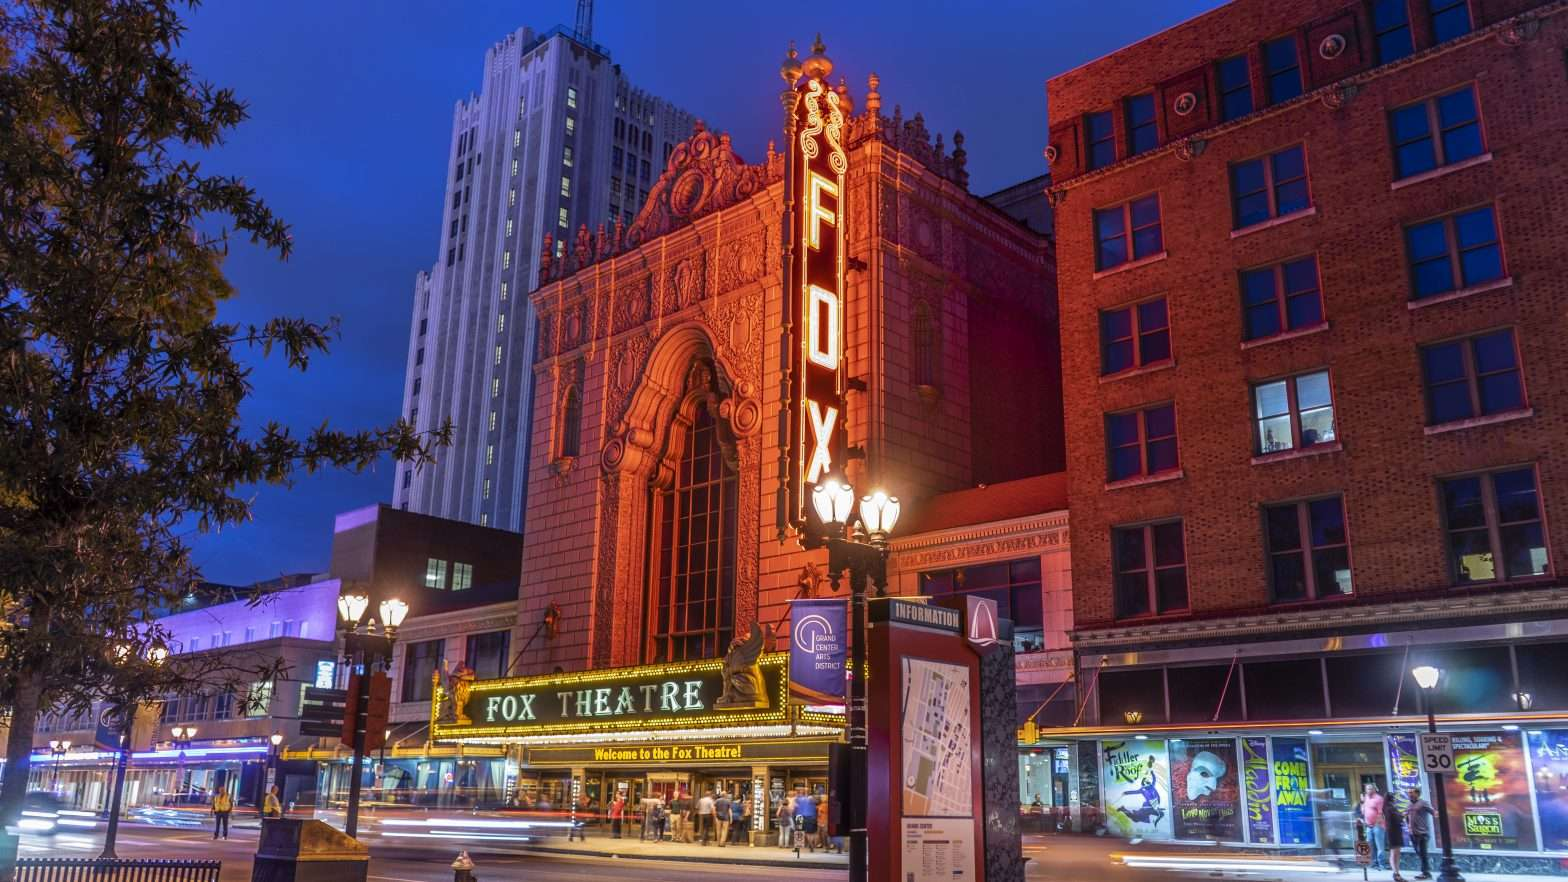 The Fox Theater, Grand Center Arts District, Midtown St Louis